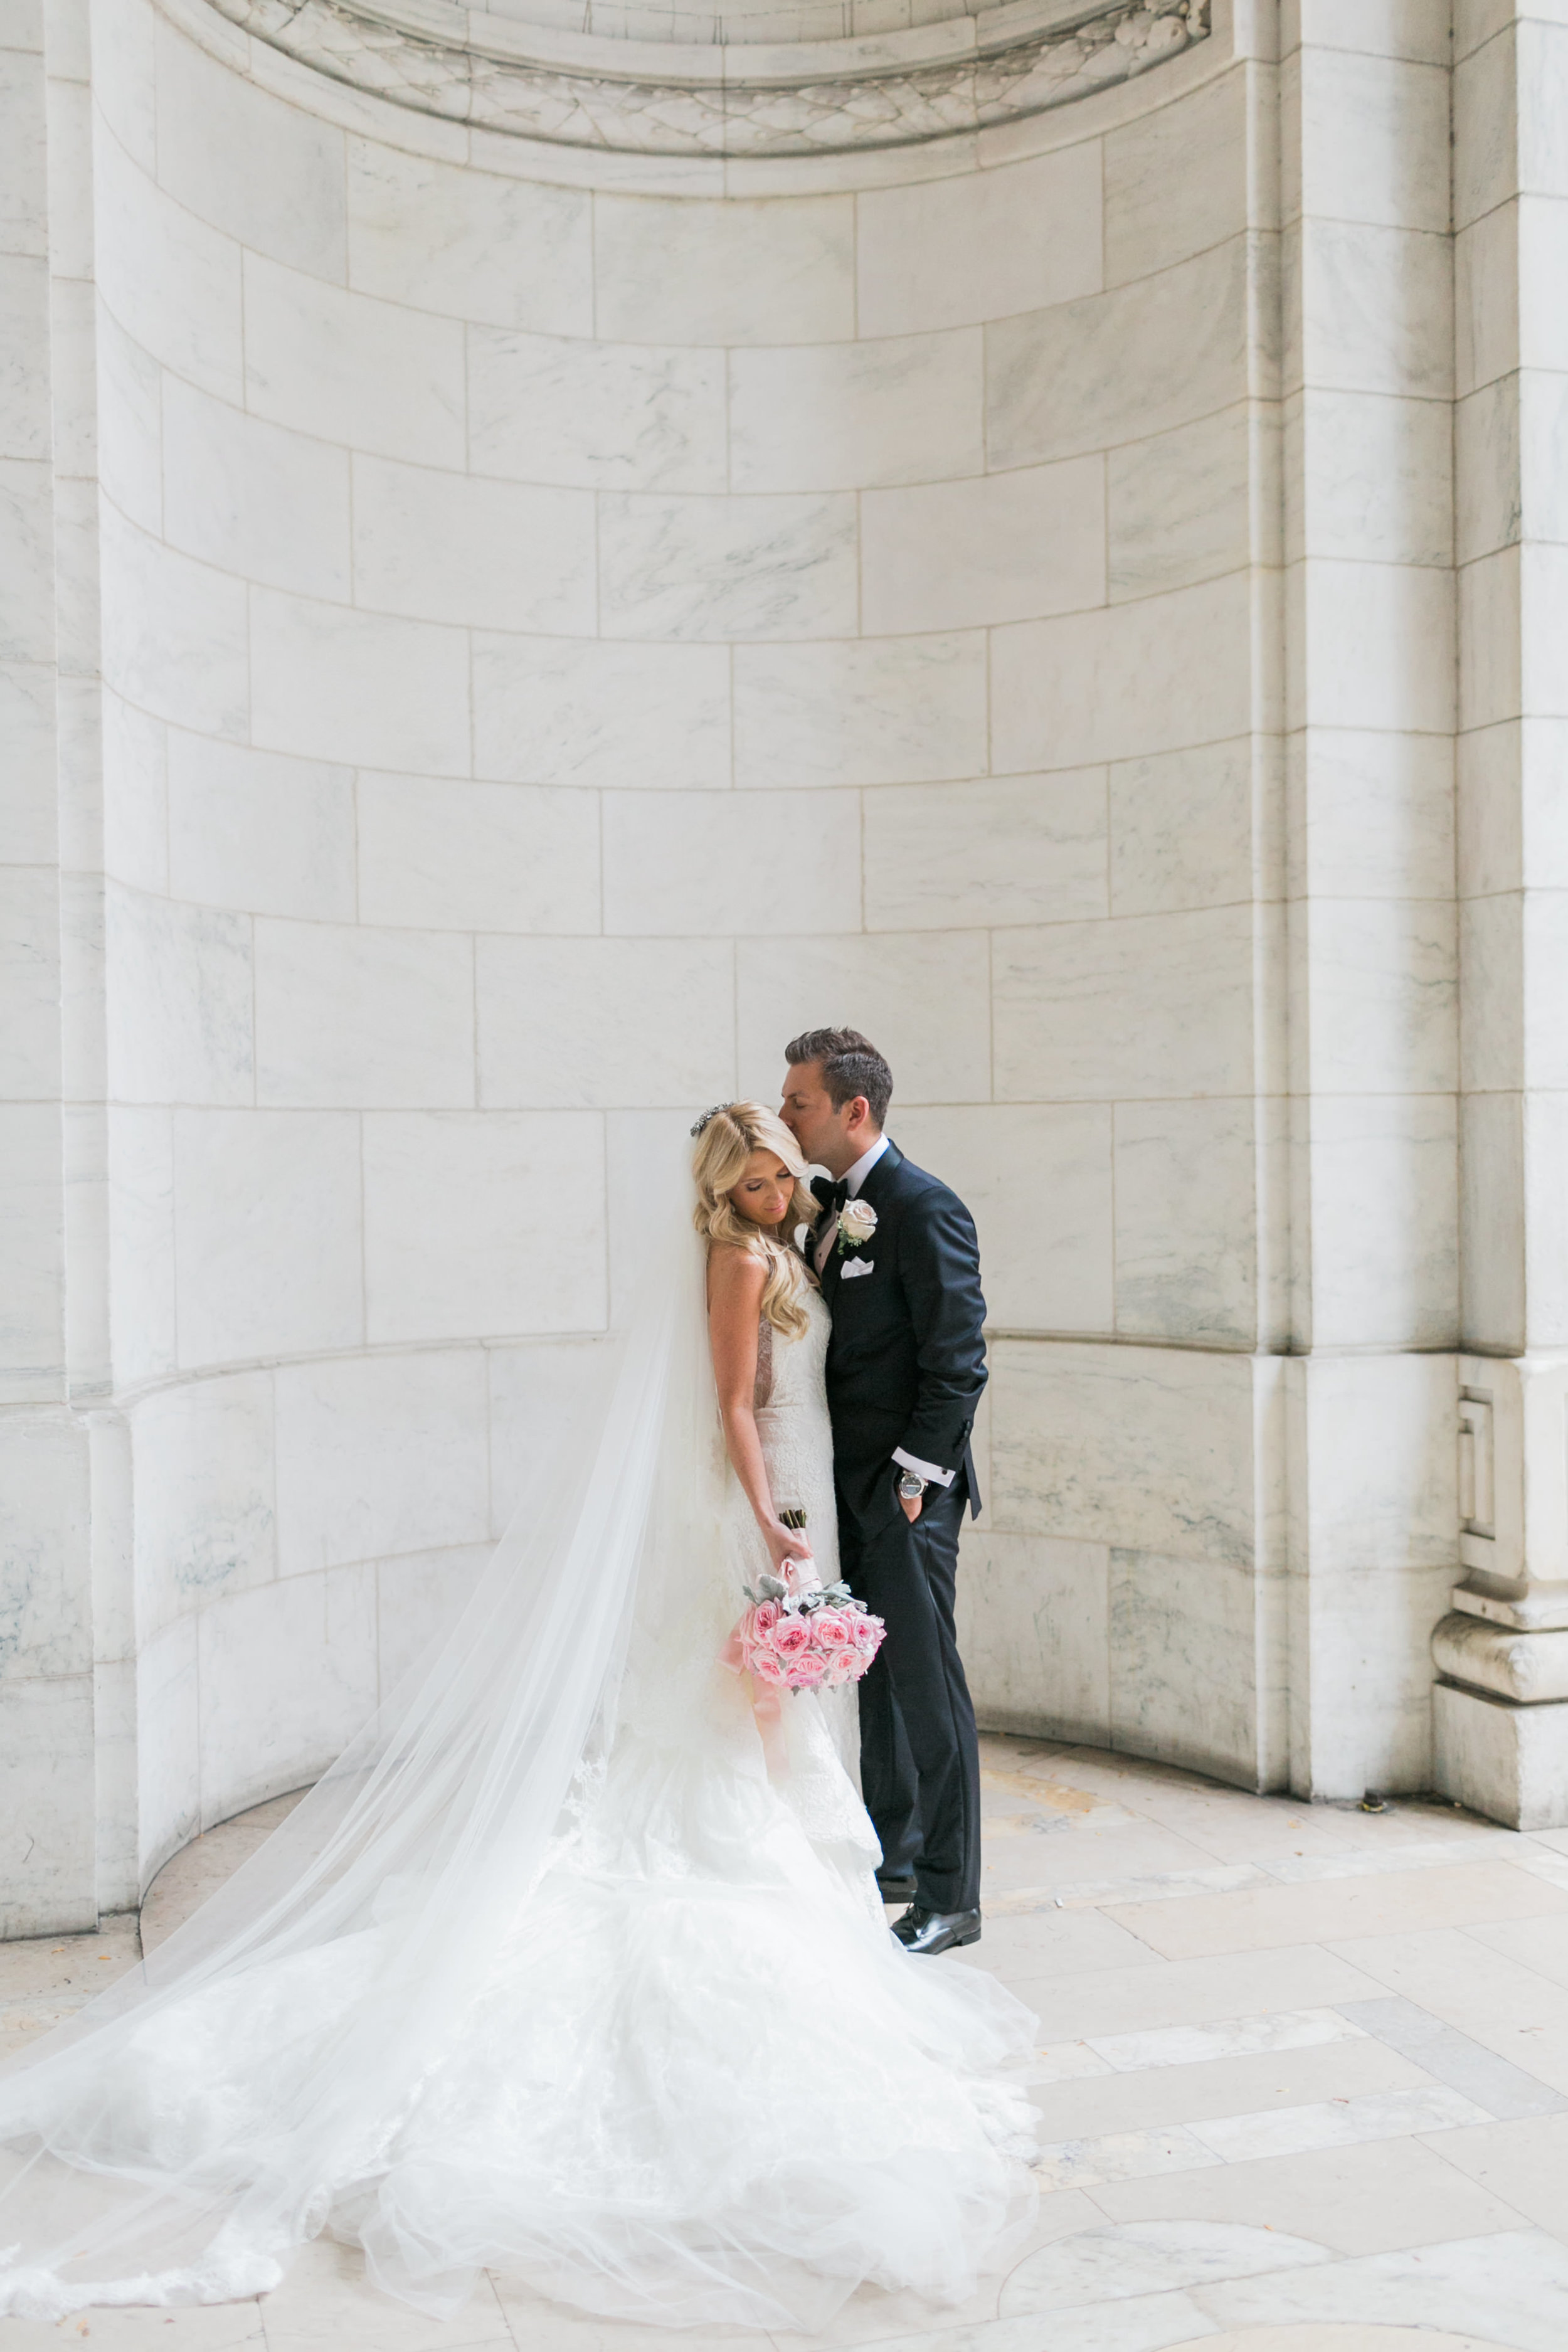 no. 2 - (MOST POPULAR)· 10 hours of wedding day coverage· Second photographer· Final details meeting· Online gallery of high-resolution images· Artistic editing process· 1 hour engagement session· Up to 100 miles of wedding day travel